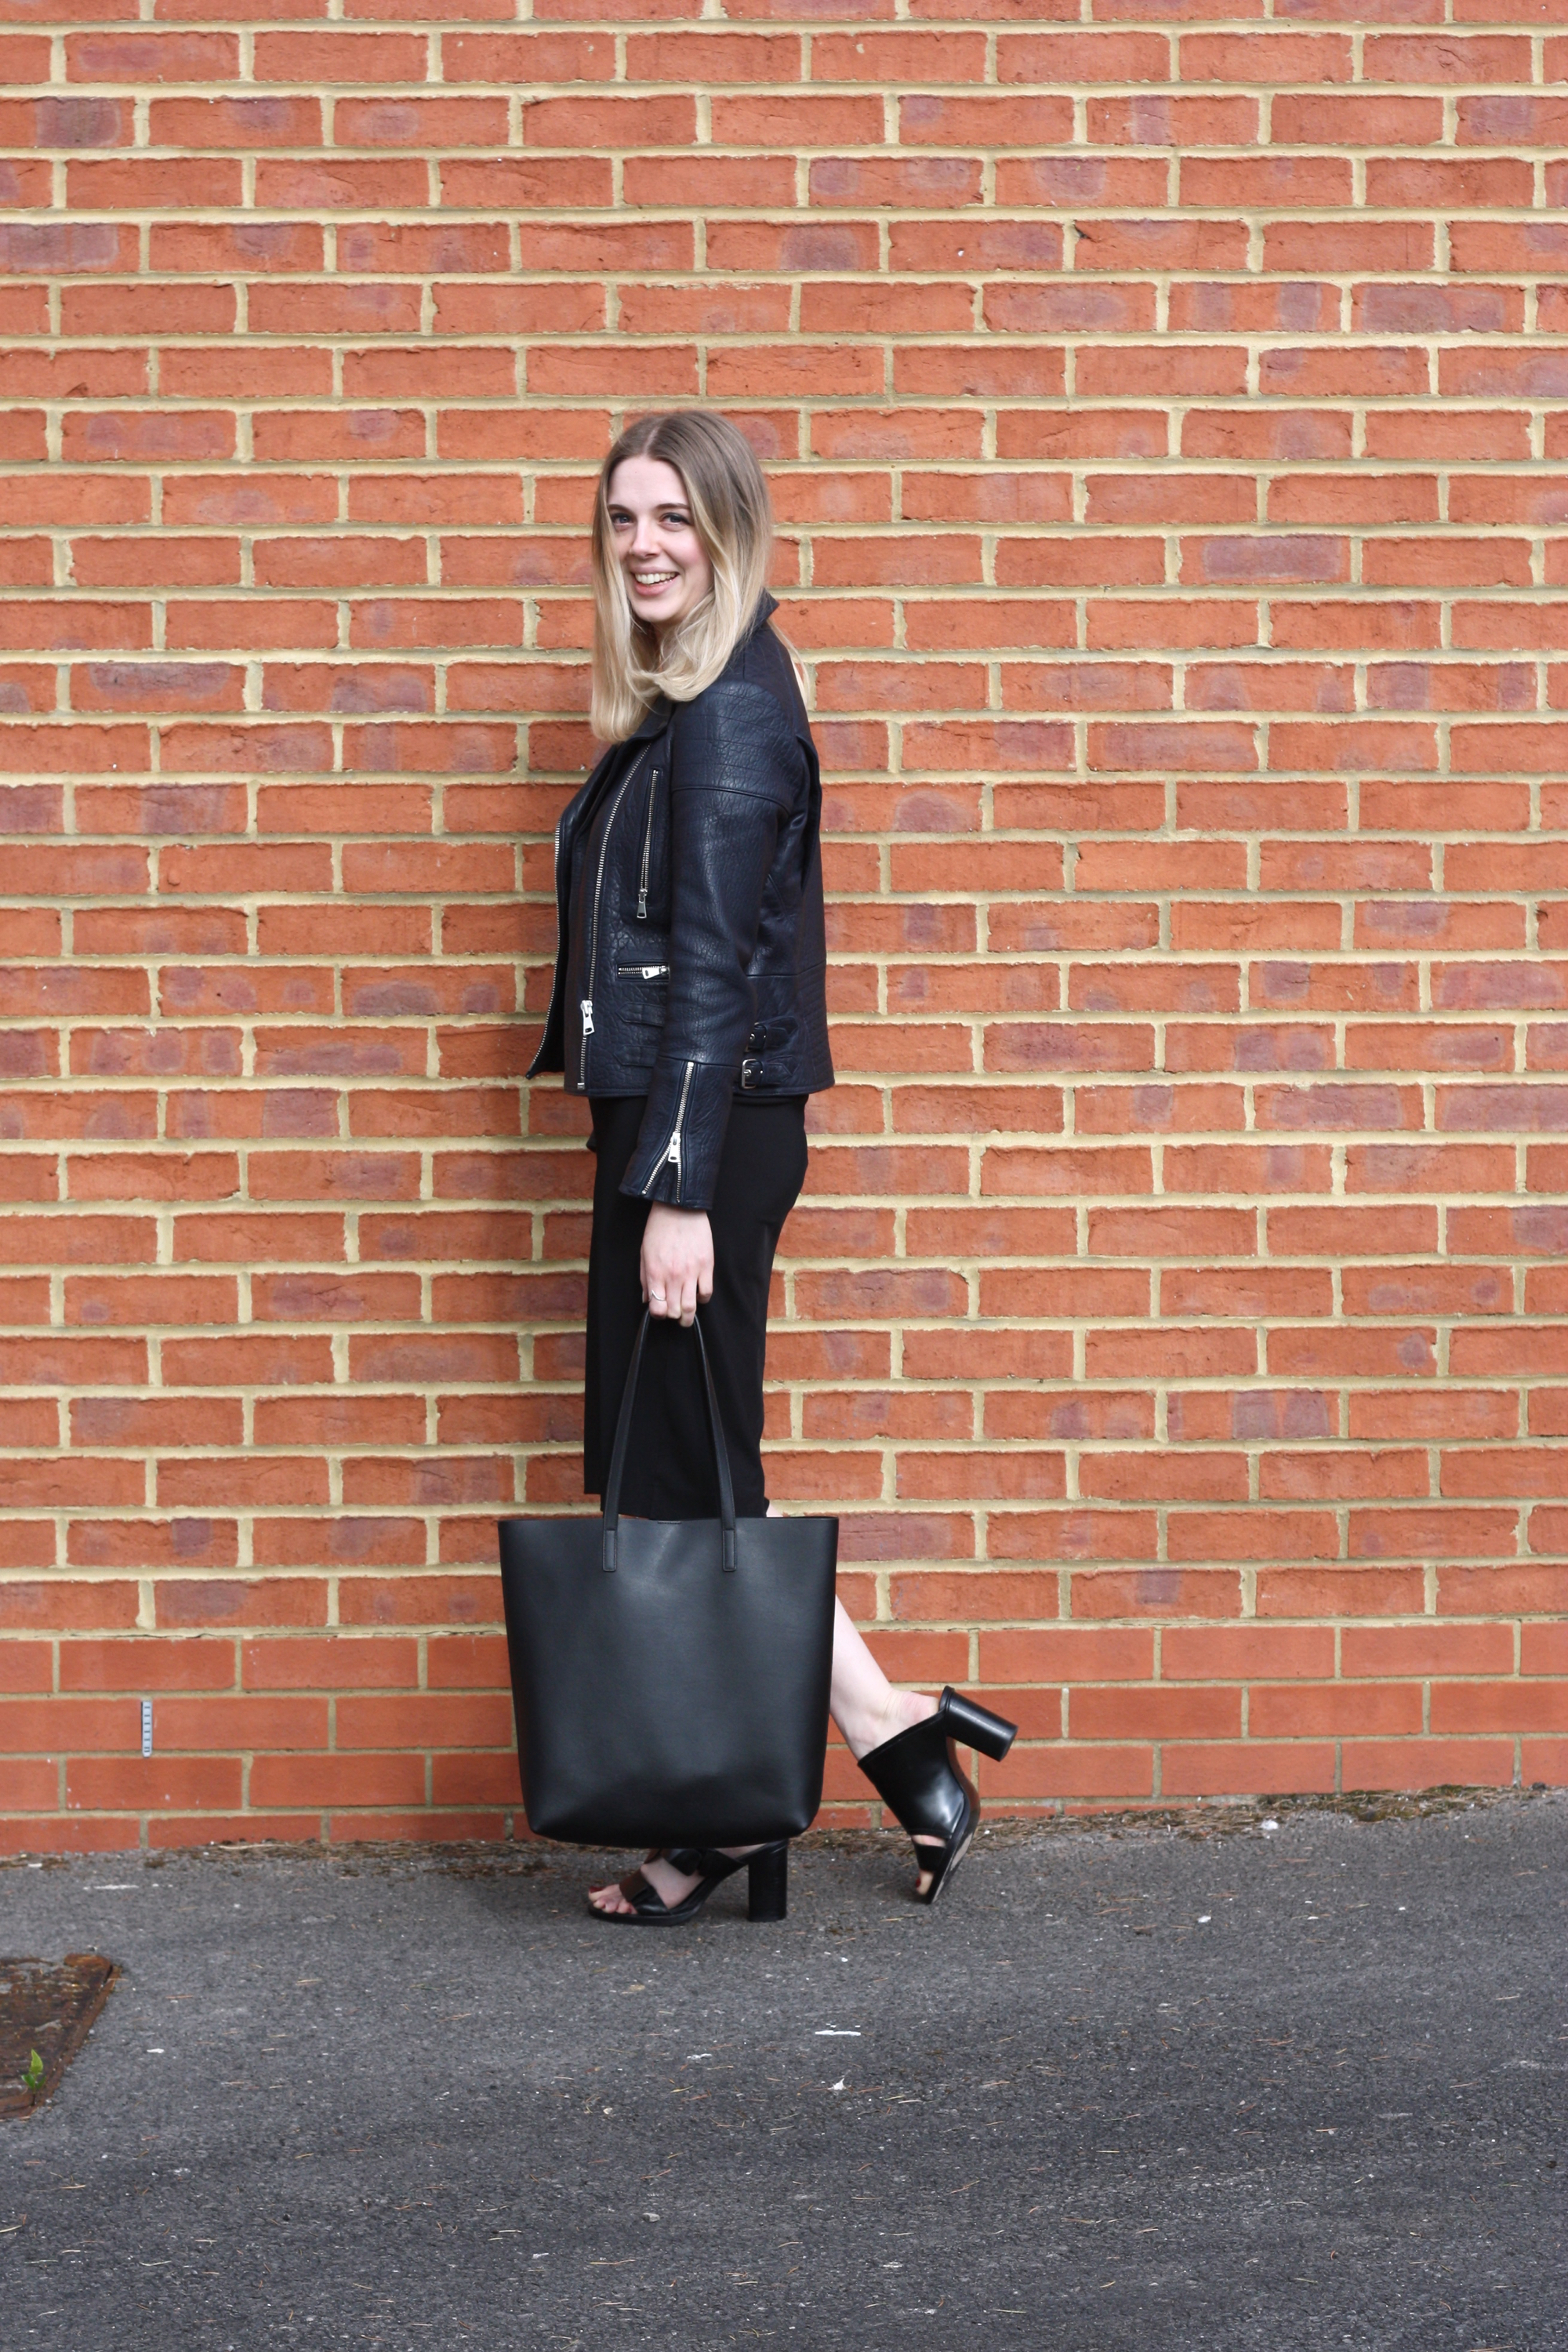 & Other Stories black mules, Whistles navy leather jacket and Saint Laurent black tote